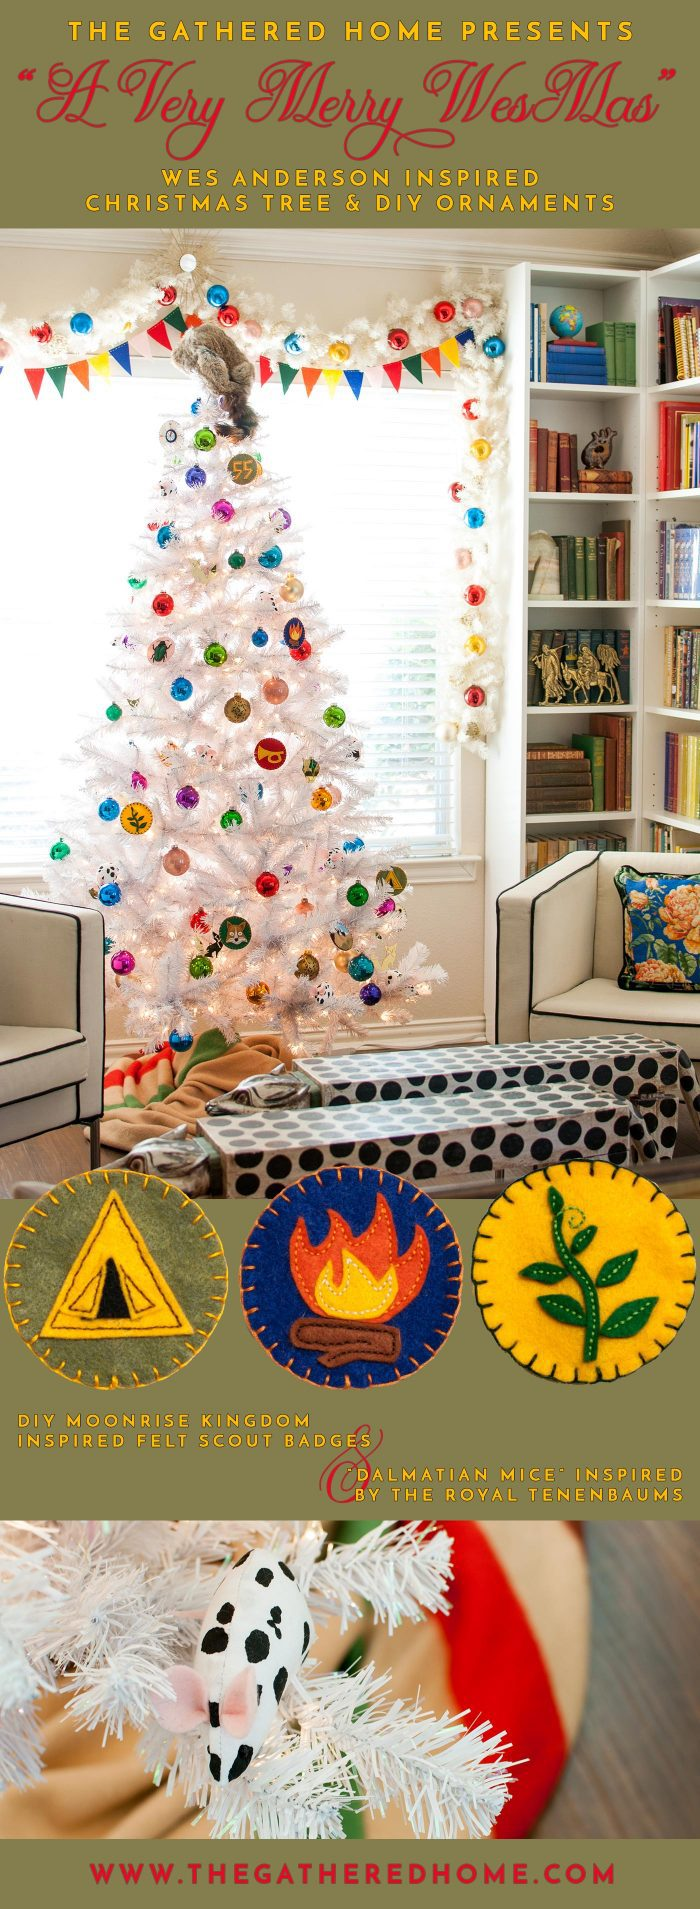 "Calling all Wes Anderson fans! This colorful and whimsical Christmas tree incorporates inspiration from Moonrise Kingdom and The Royal Tenenbaums. Get all the details for the DIY vintage scout badge ornaments and little ""dalmatian mice"" here in the post."